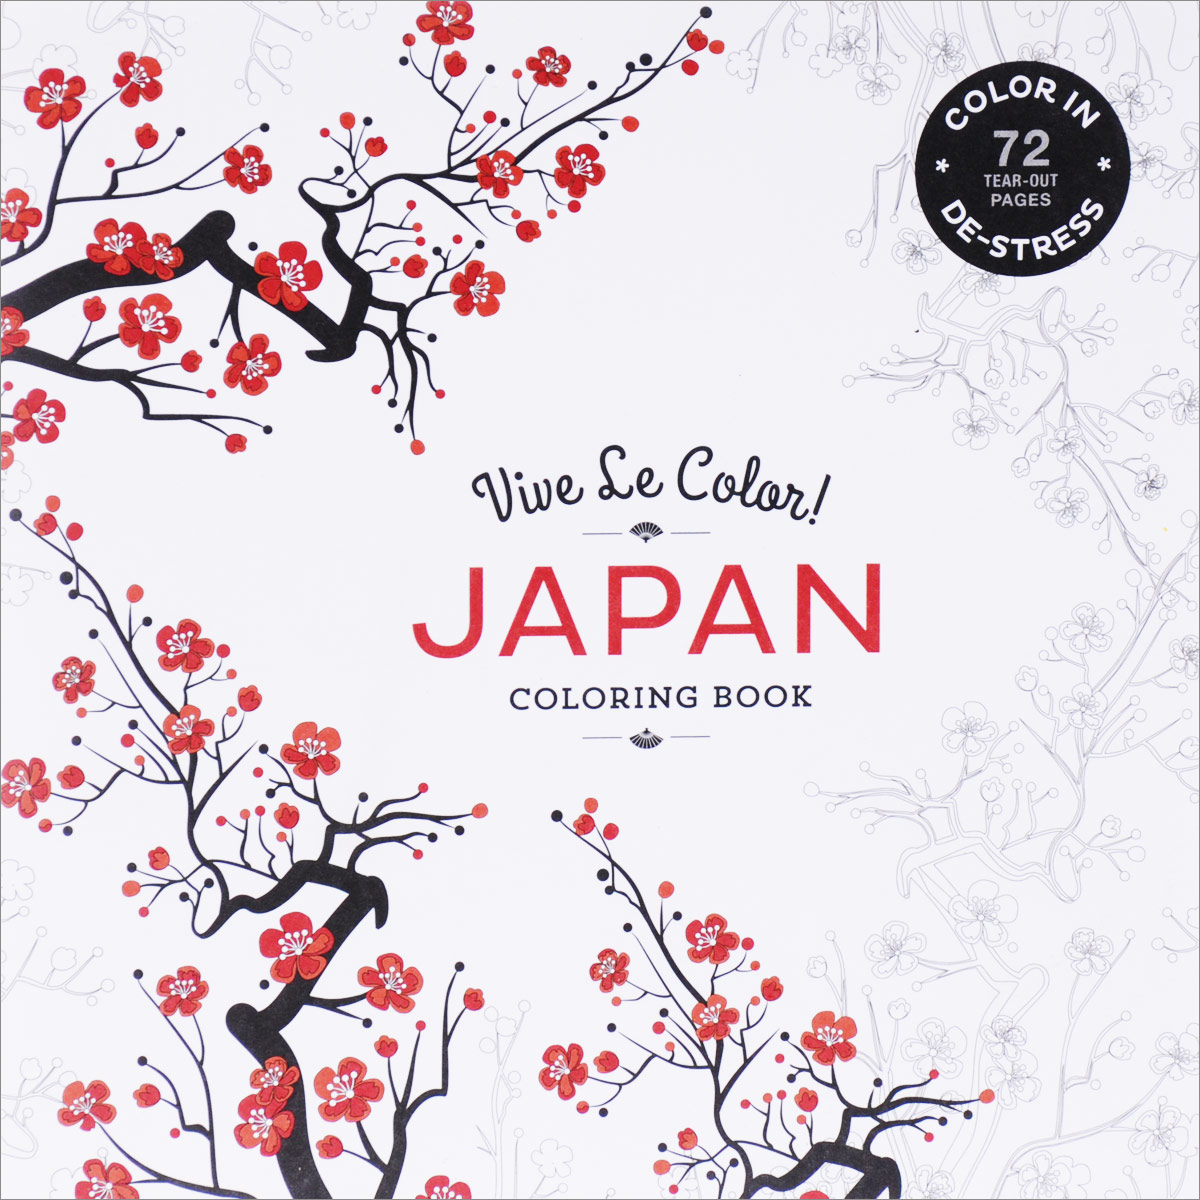 Japan: Coloring Book single sided blue ccs foam pad by presta